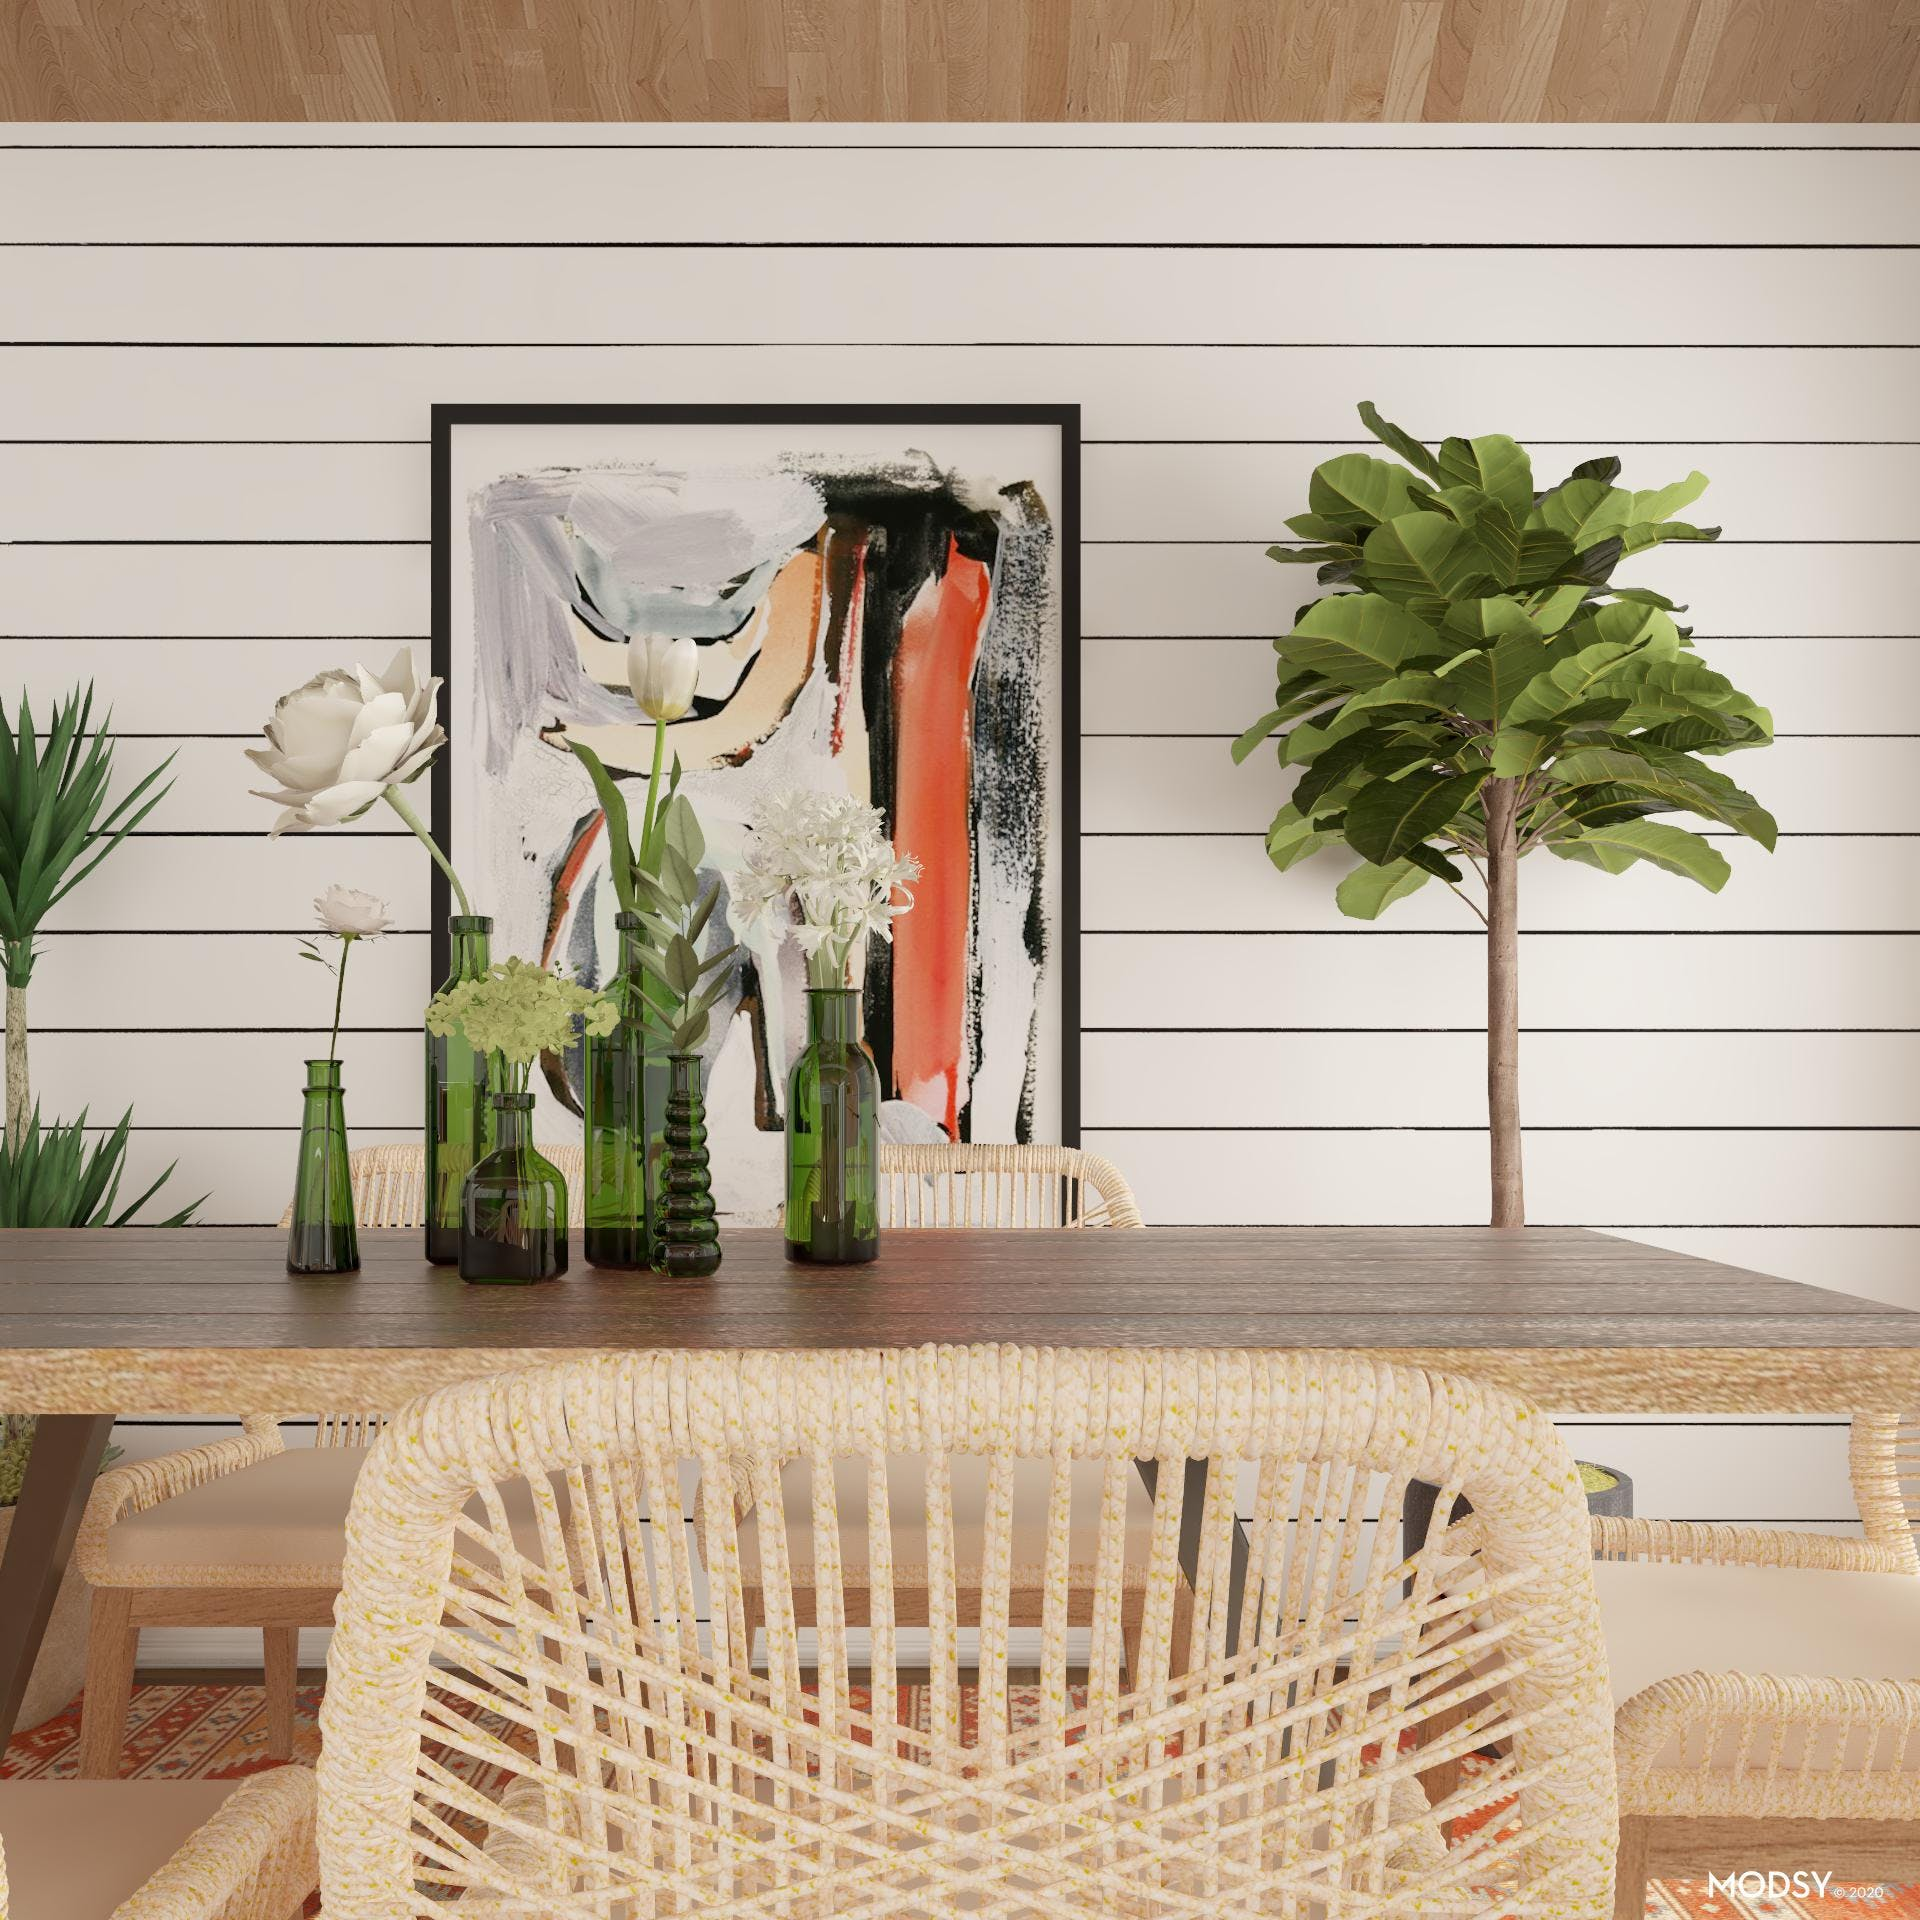 Feel free and relax in the Eclectic Dining Room